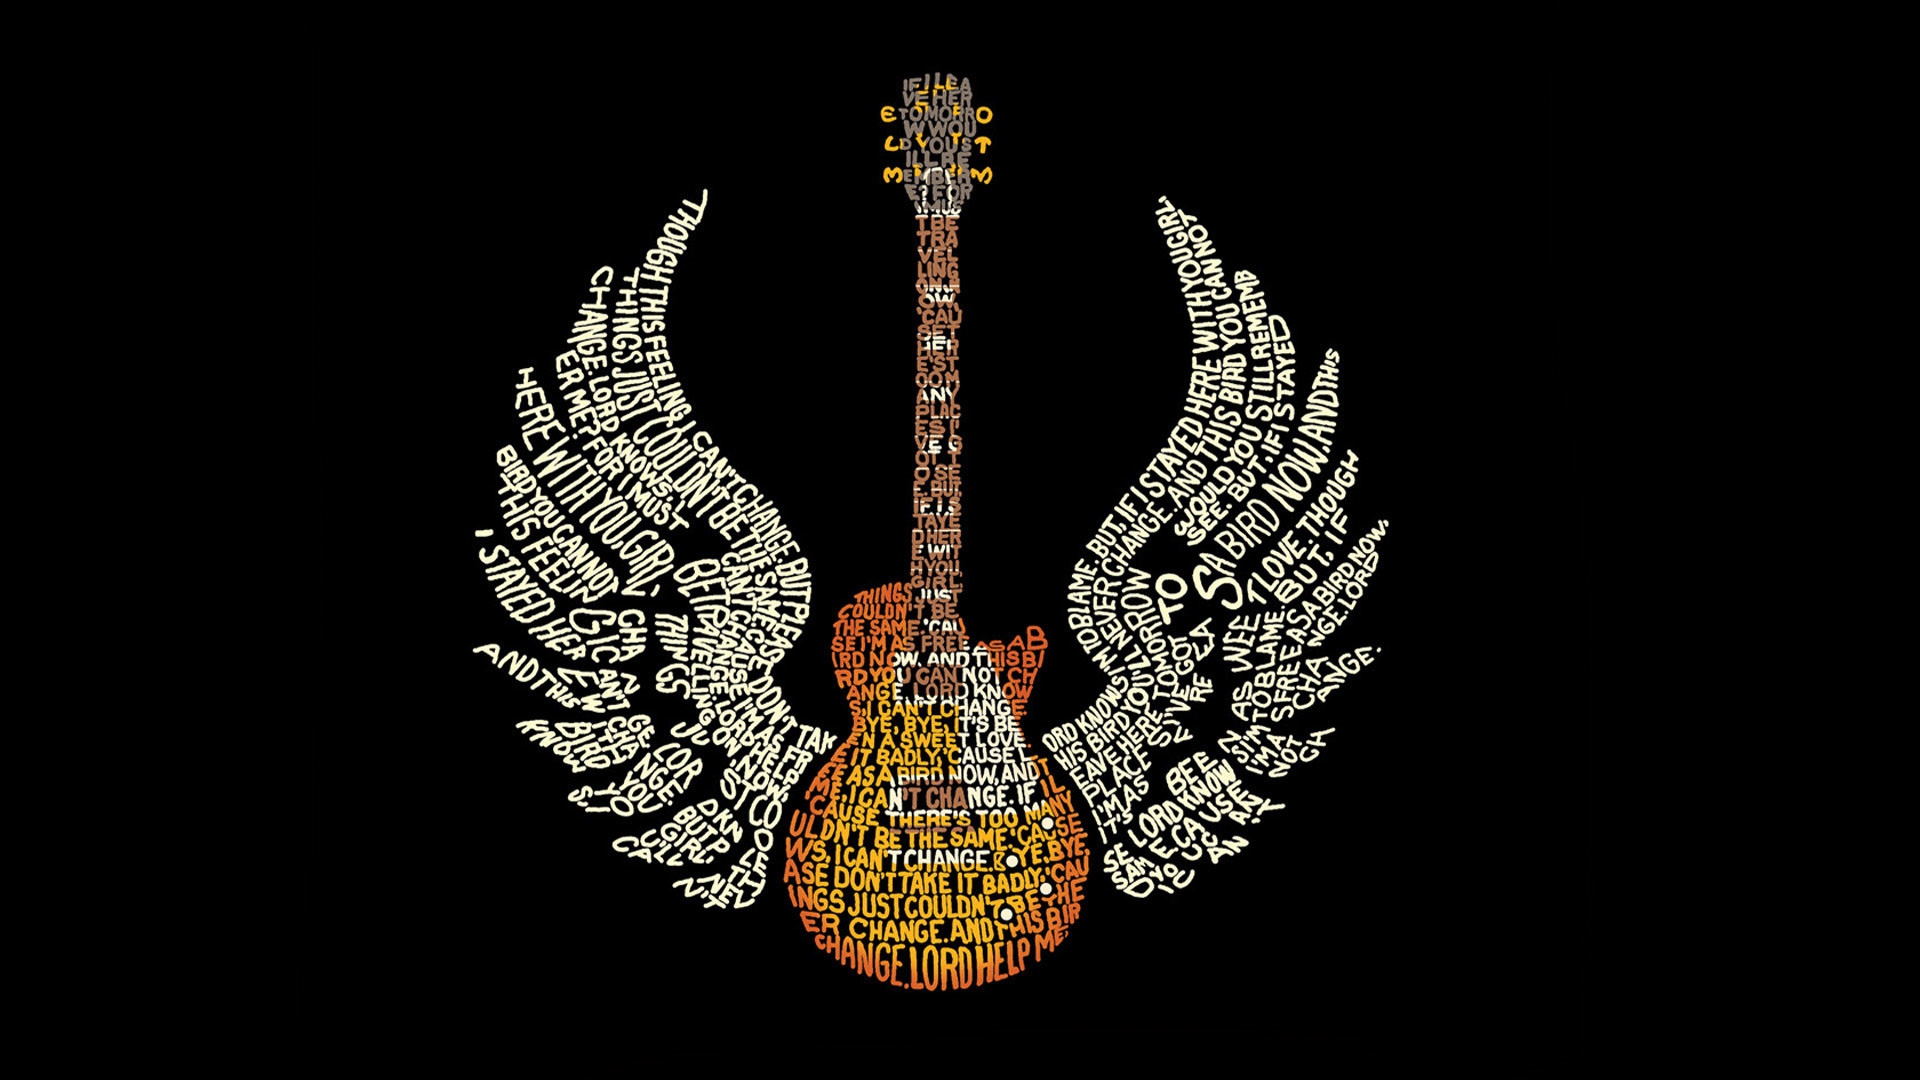 1920x1080 hd pics photos music guitar wings text logo desktop background wallpaper